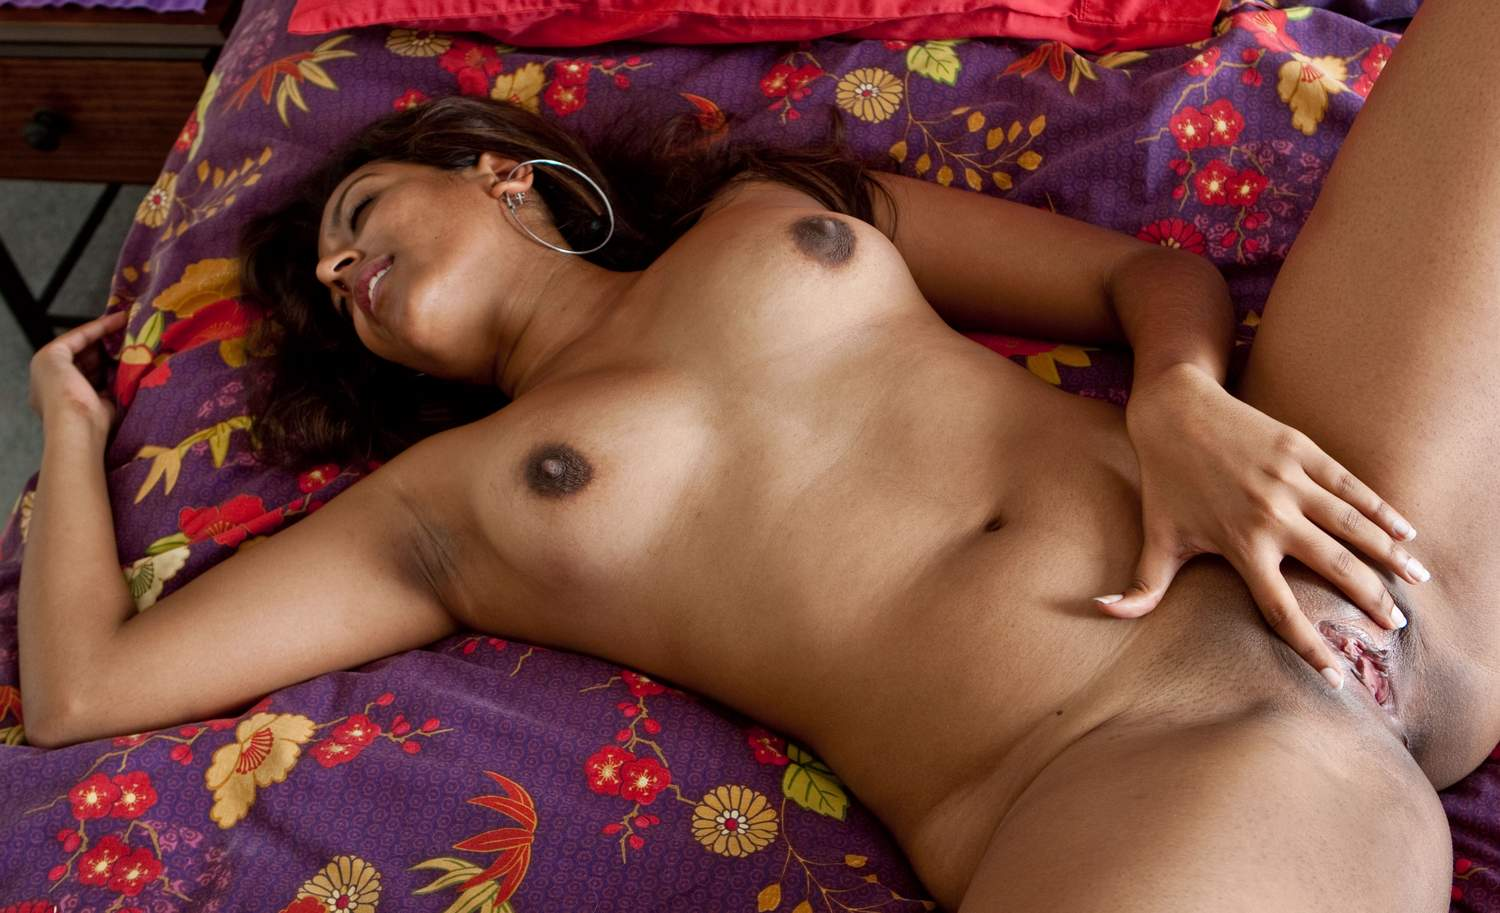 bhabhi naked photo hd